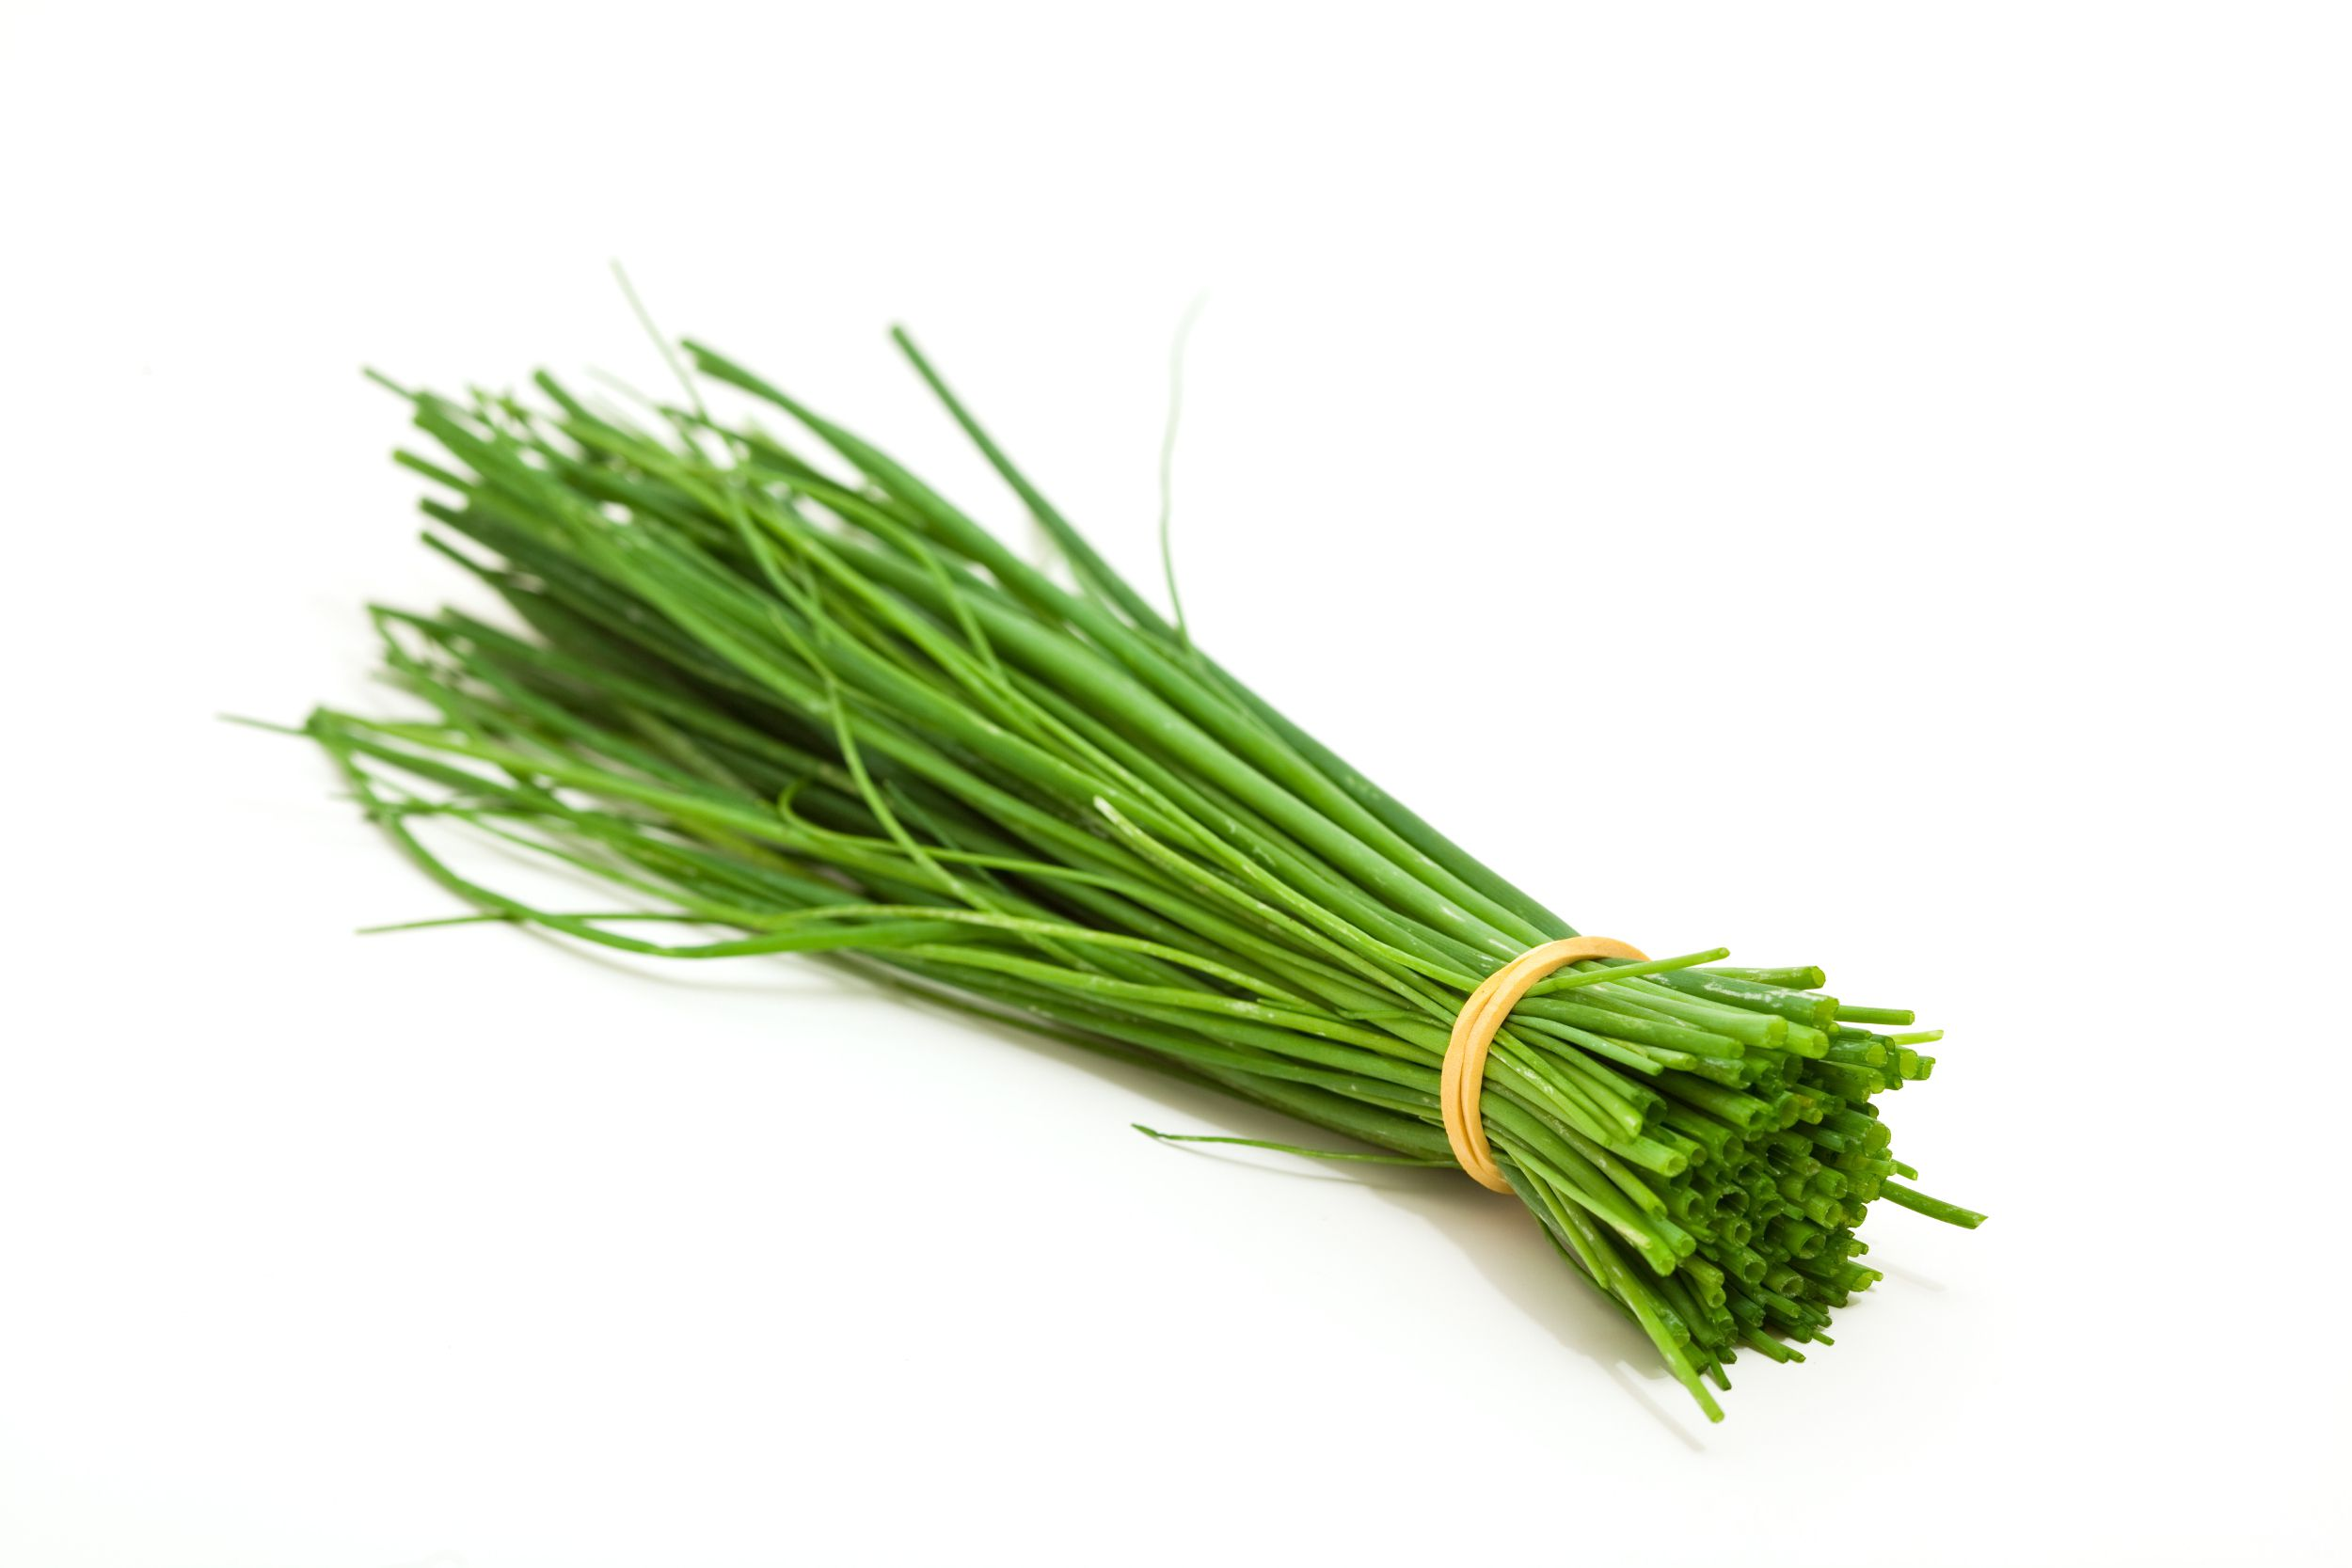 Chives A Versatile Herb Easy To Use And Grow Your Own